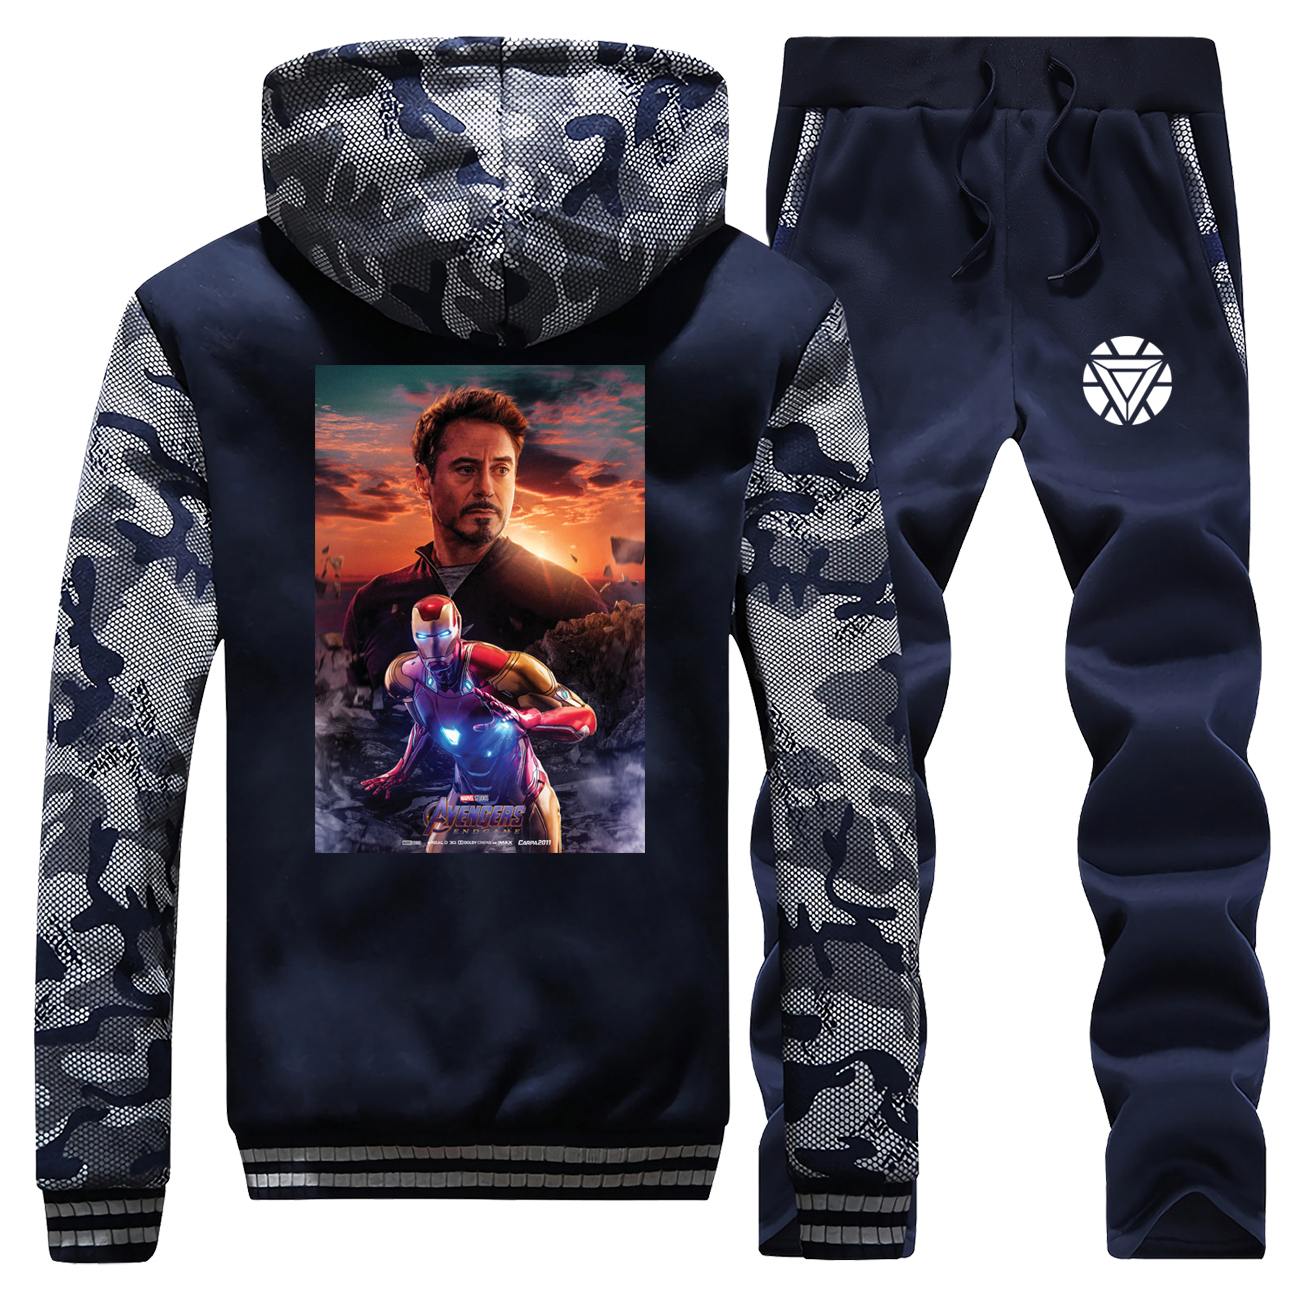 Tony Stark Camo Thick Male Set Iron Man Hoodie Pants Fleece Men Tracksuit Set Avengers Gym Suit Winter Bodywarmer 2 Piece Sets